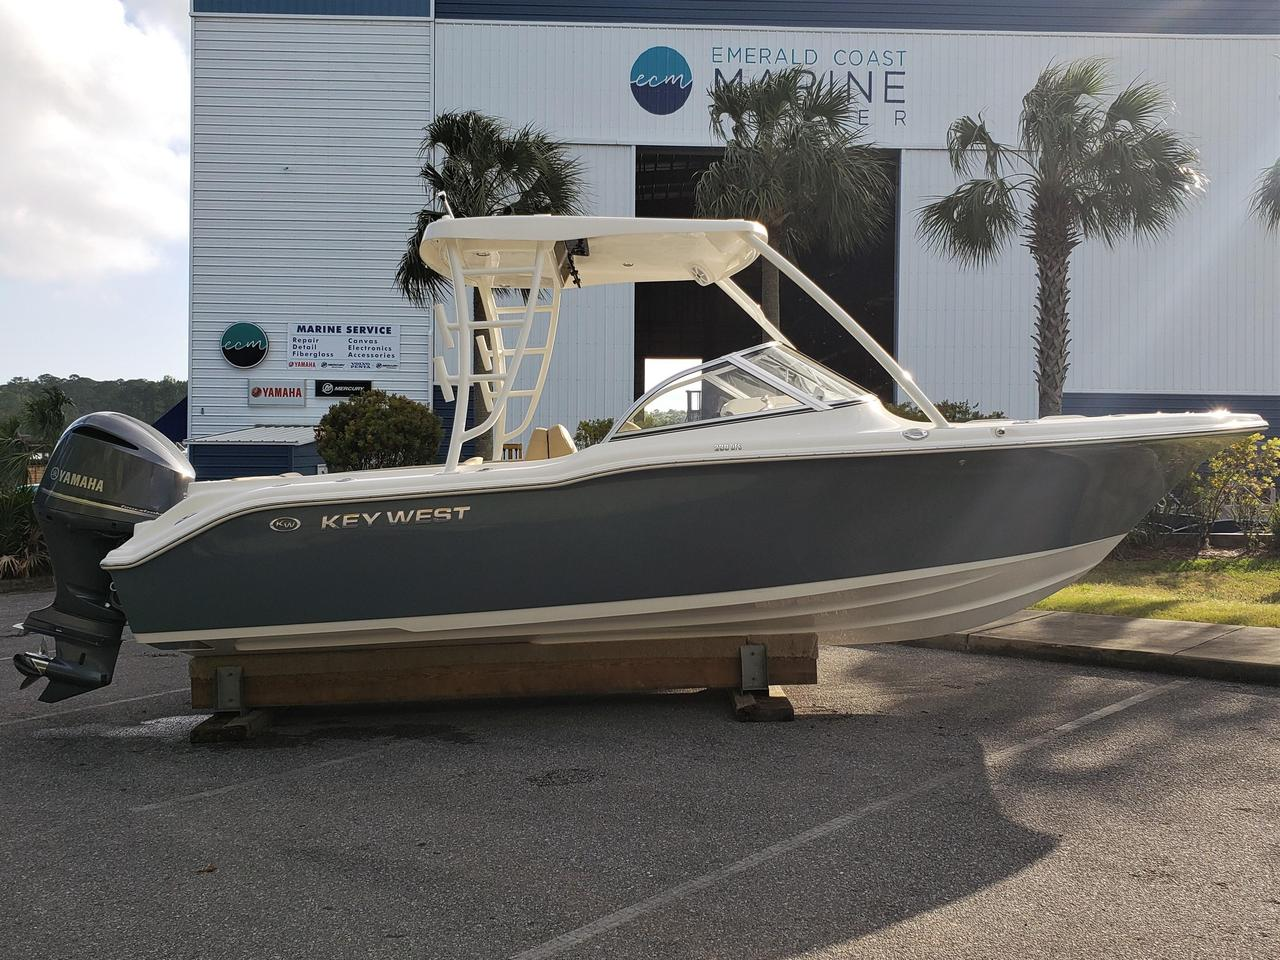 2018 New Key West 239 DFS Cruiser Boat For Sale - $65,312